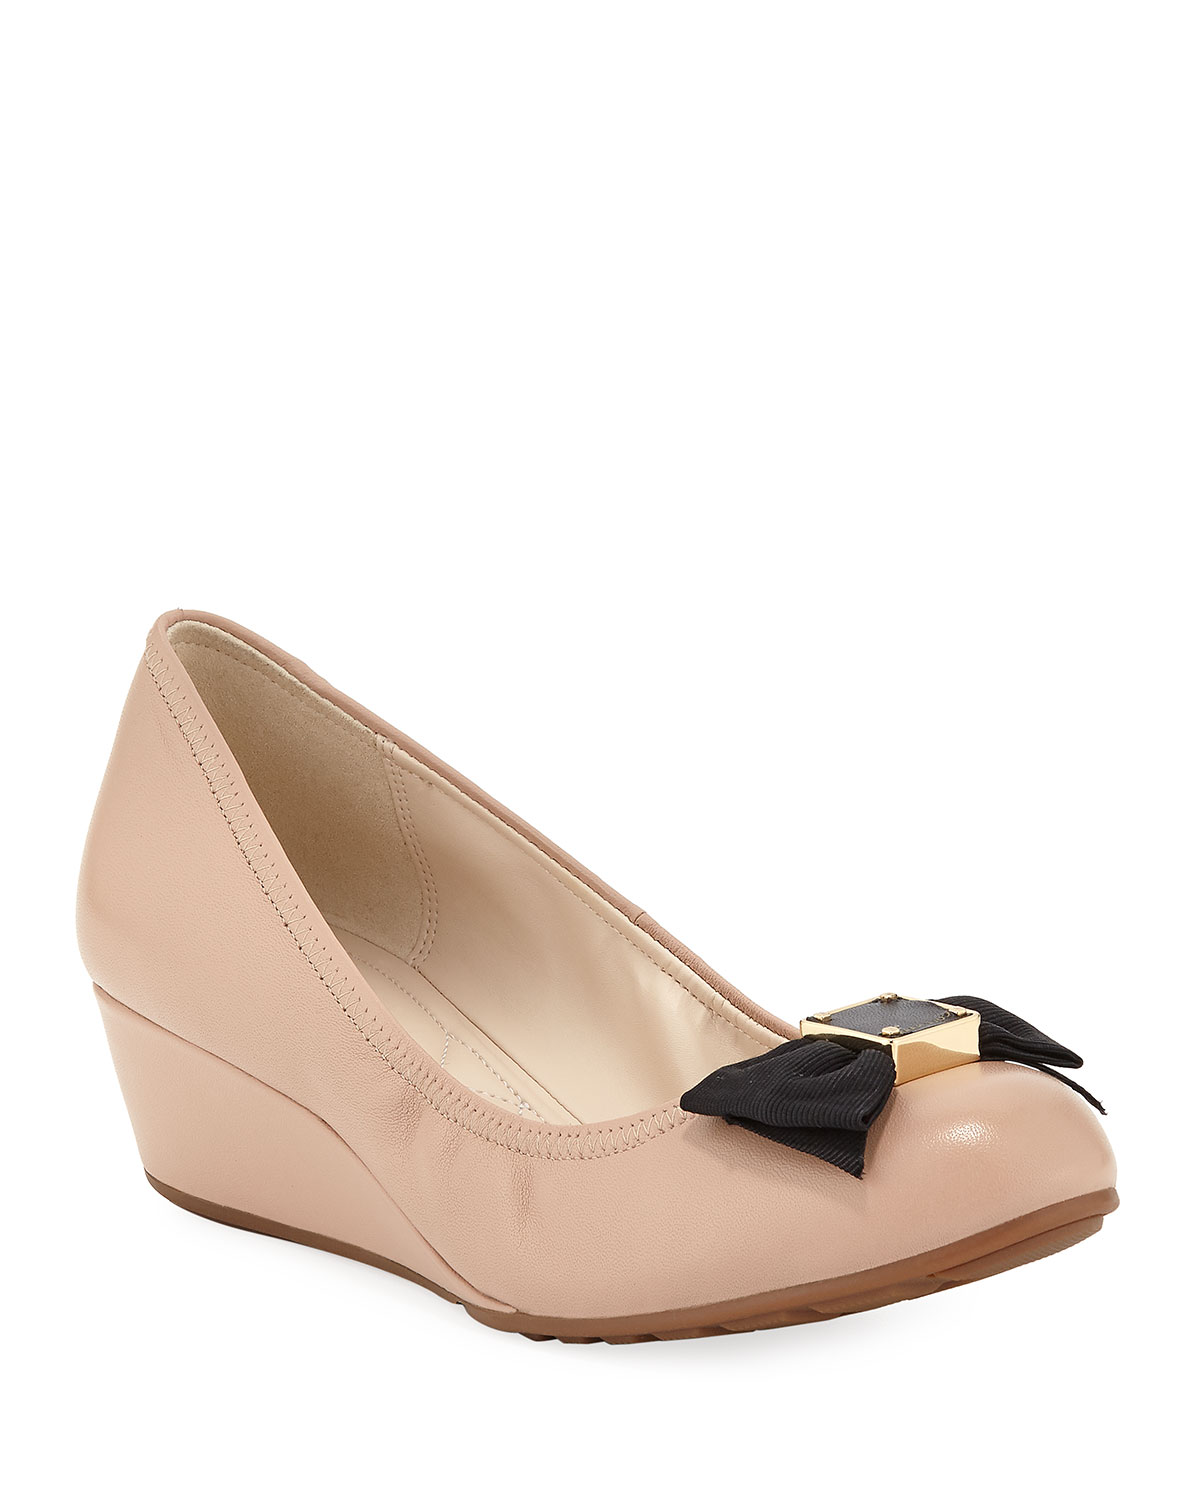 b9474f324 Cole Haan Tali Grand Soft Bow Wedge Pumps   Neiman Marcus